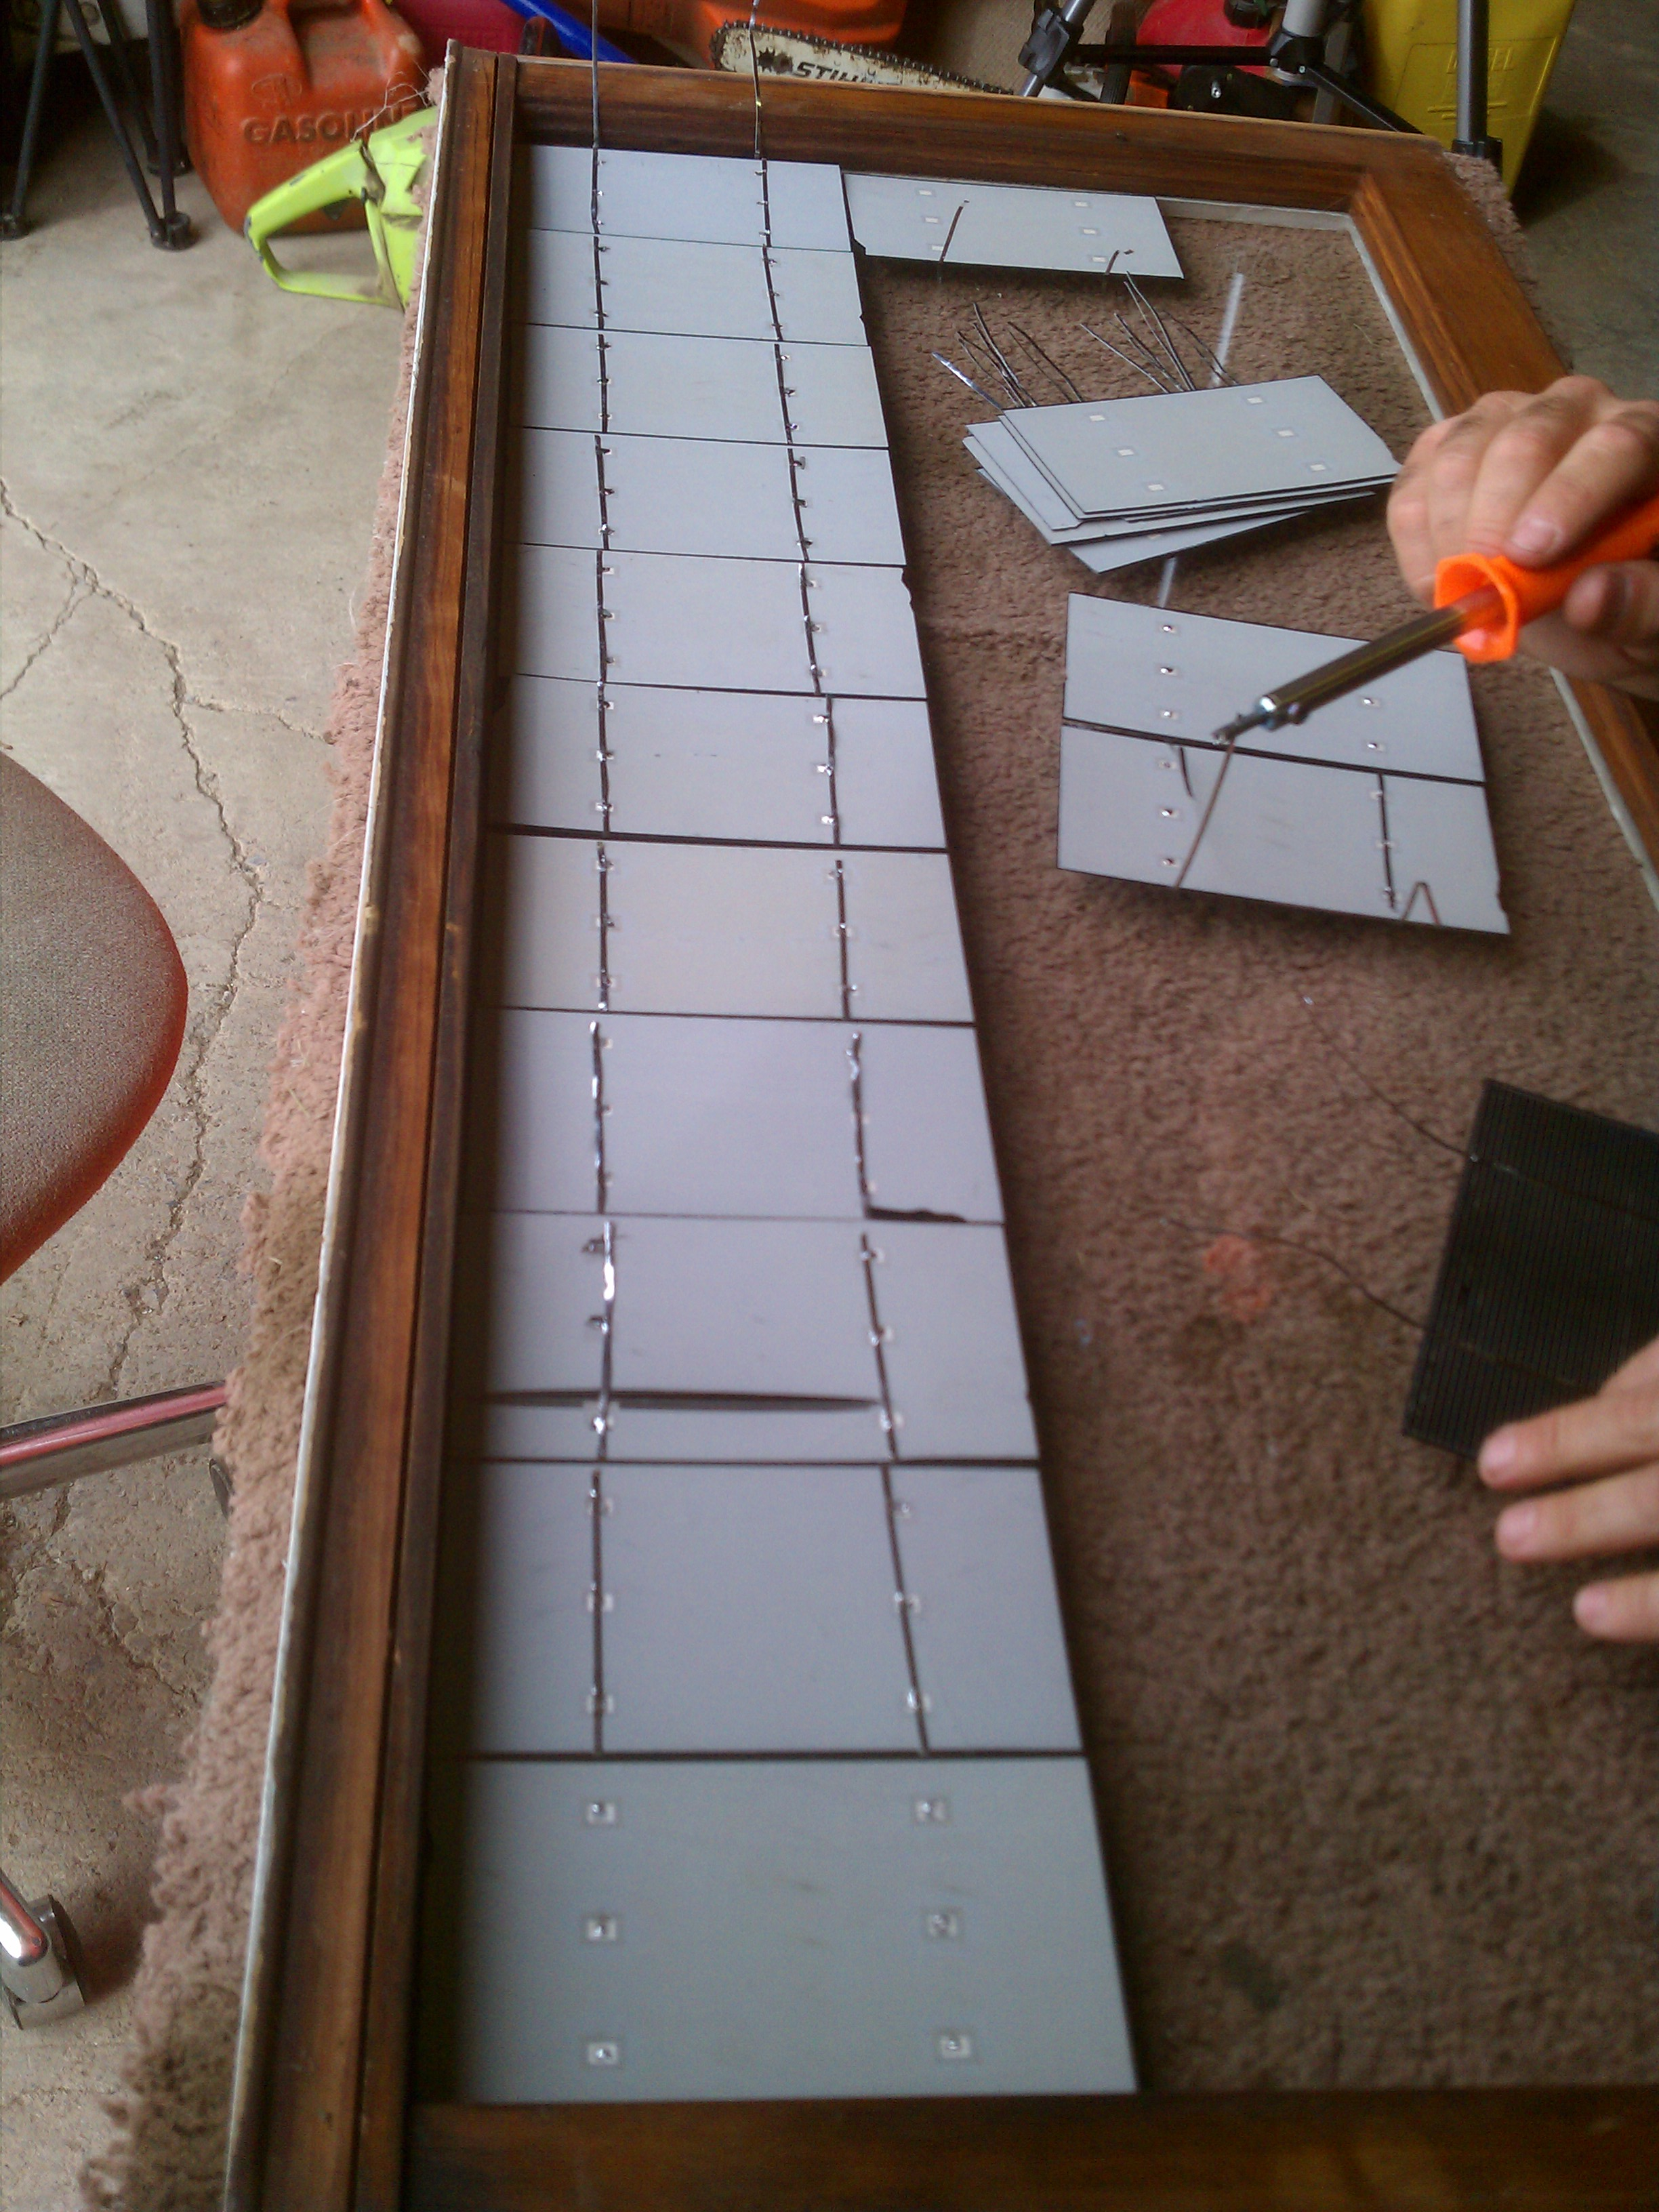 Hobby Electronics How To Make Home Made Solar Pannel